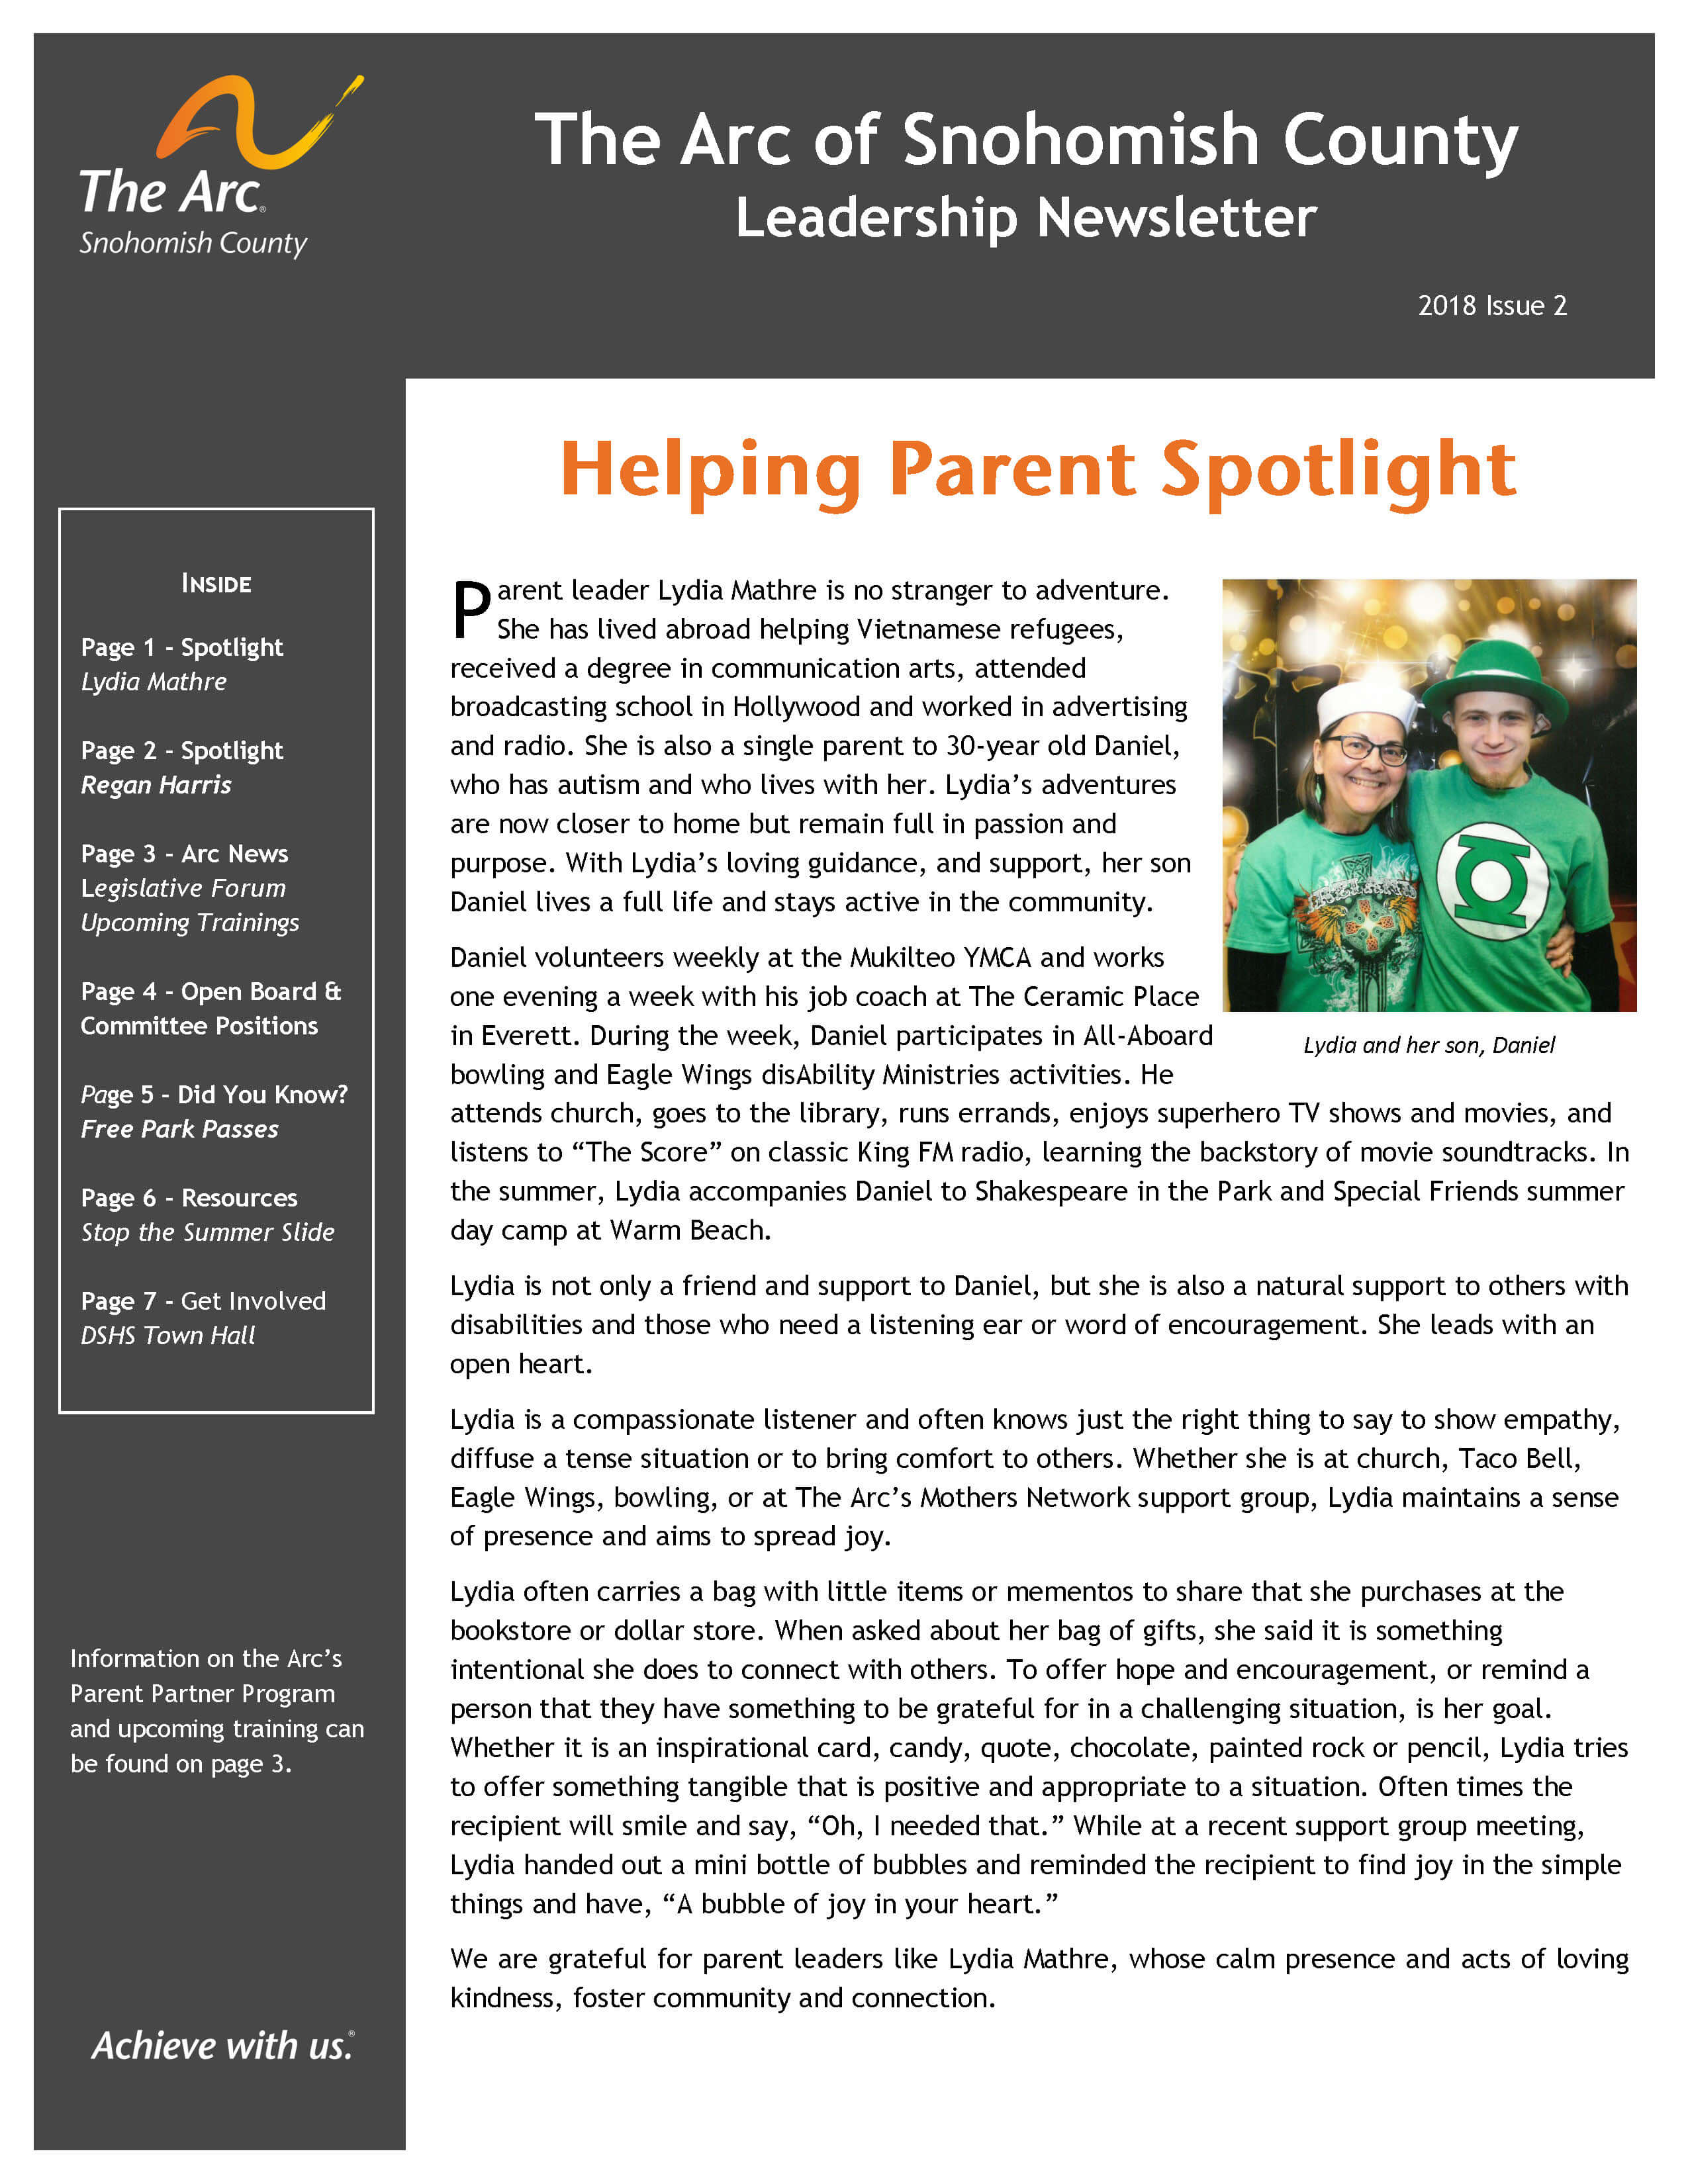 Newsletter 2018 Issue 2 Page 1